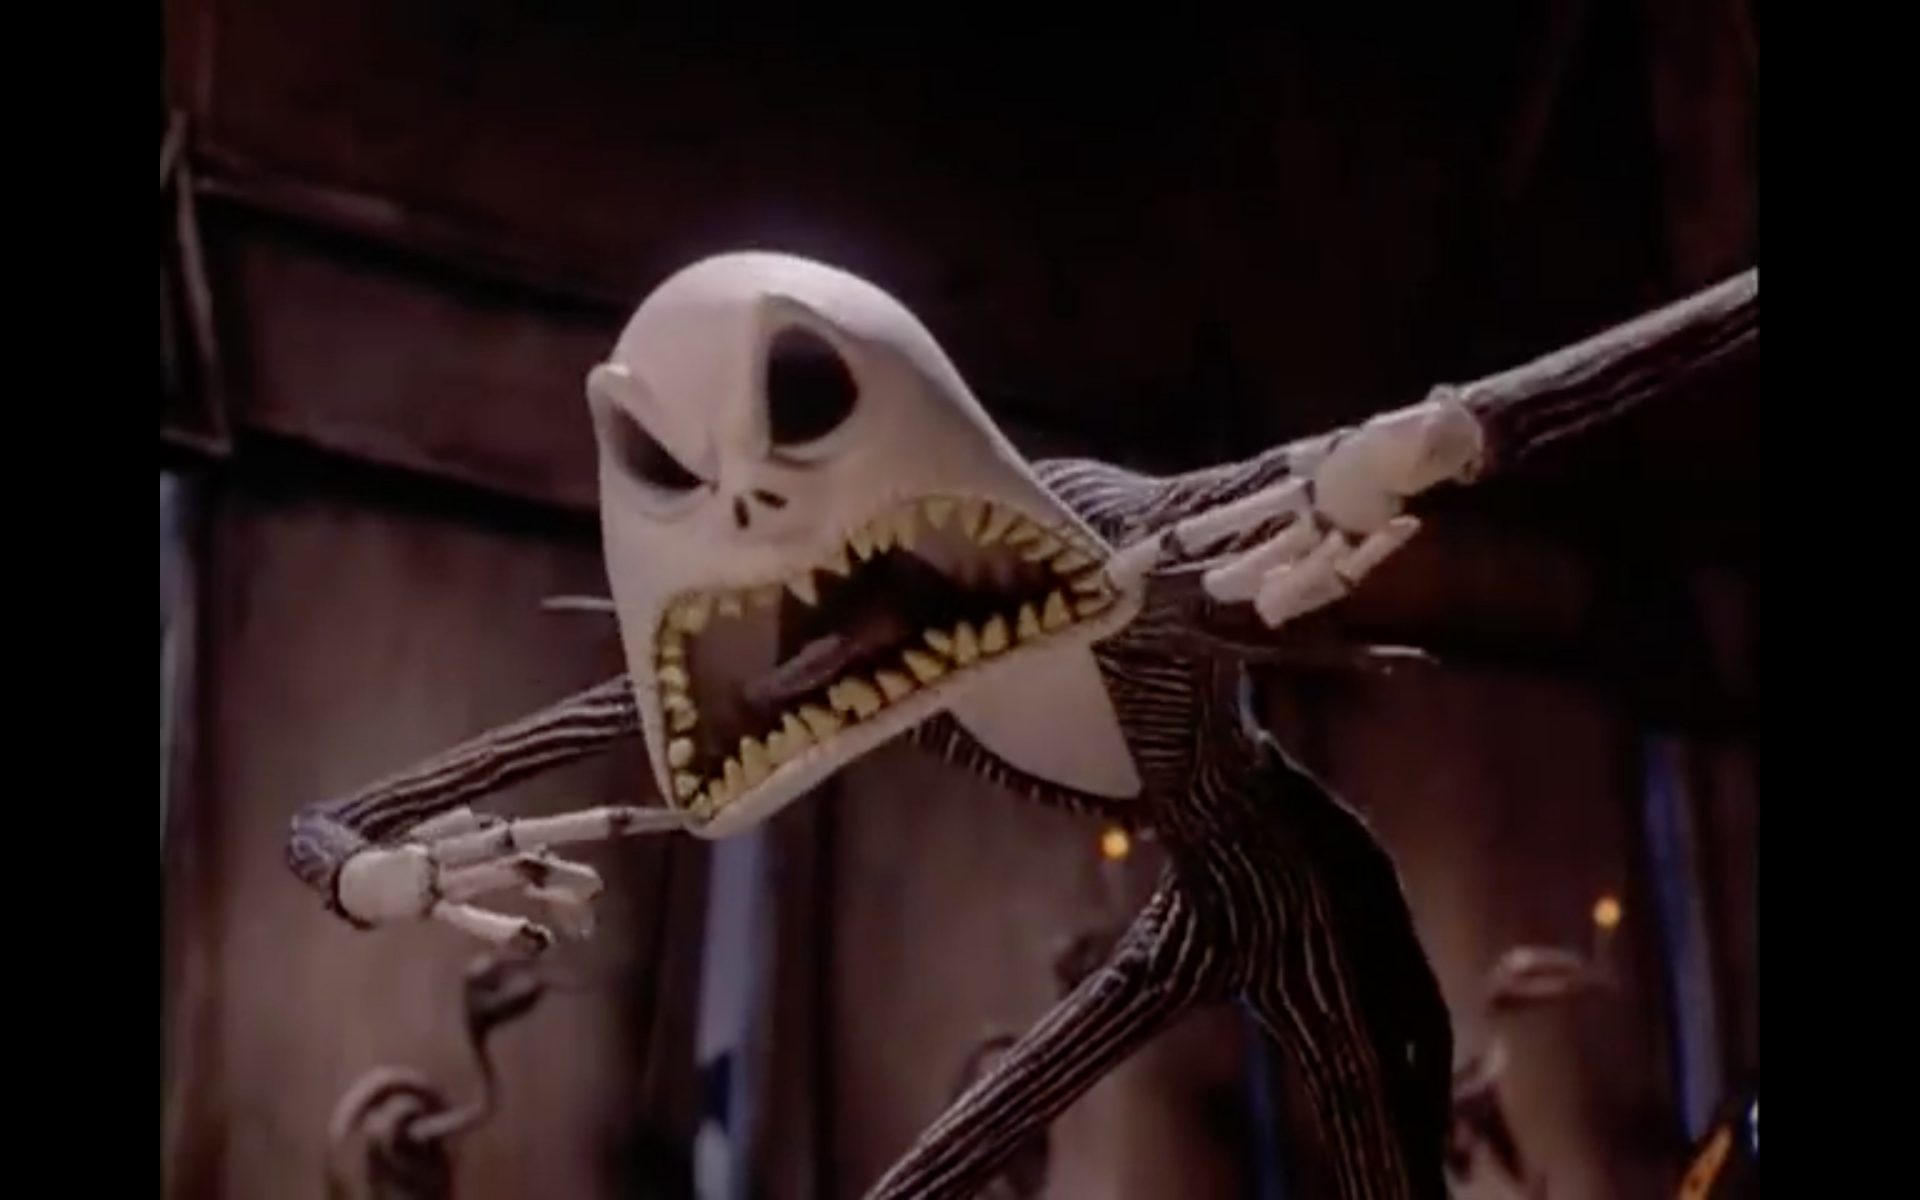 Relive \'The Nightmare Before Christmas\' - Sci-fi and Fantasy Network